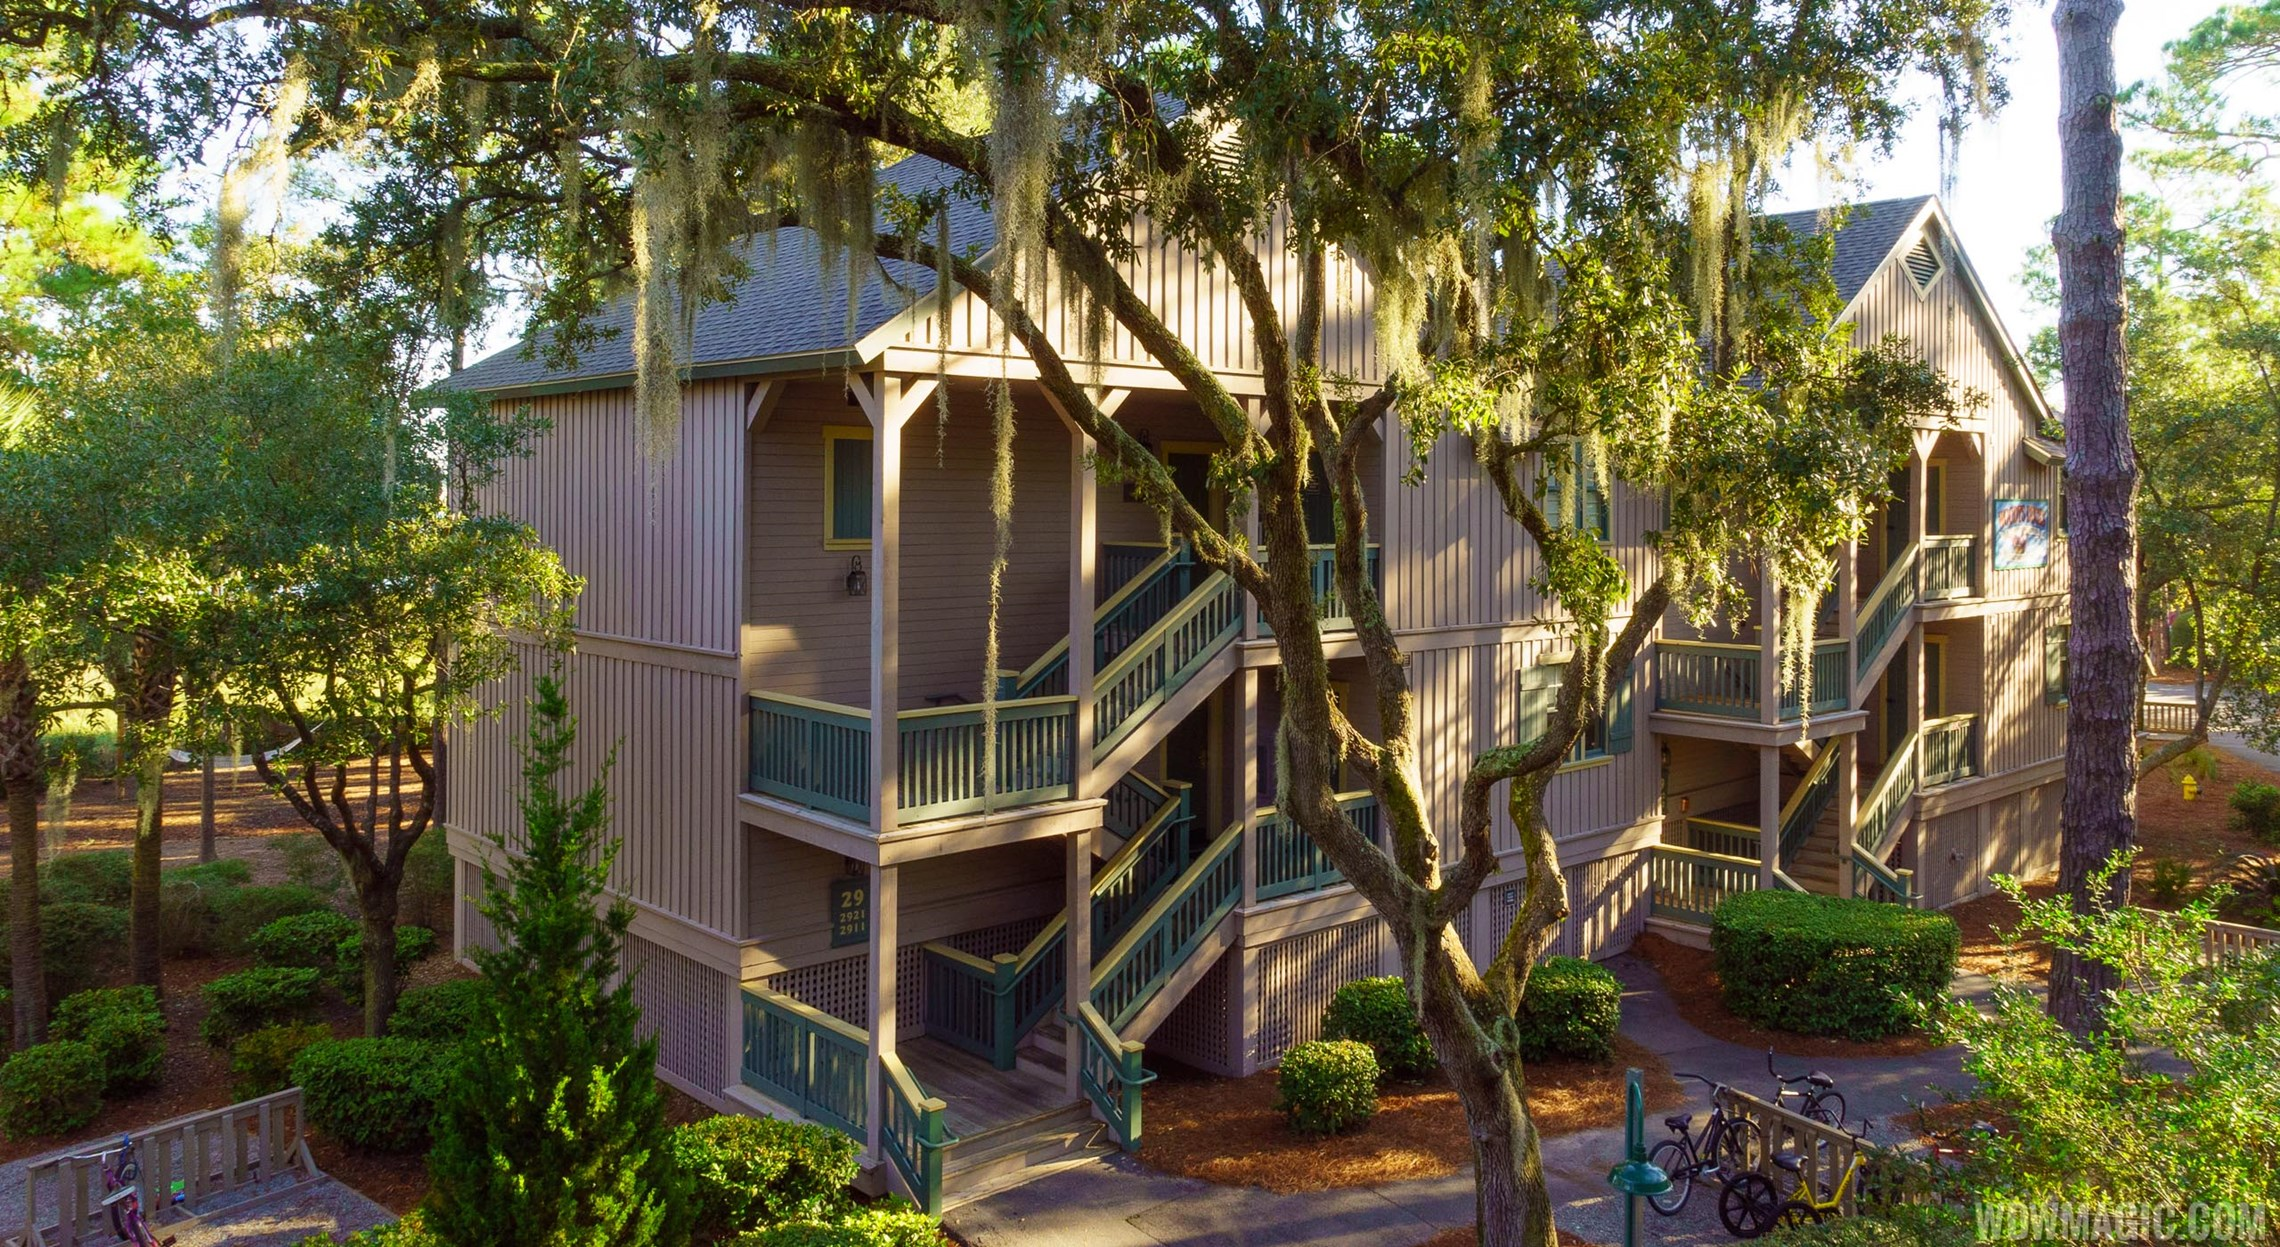 Getting Started Selling Your DVC Membership